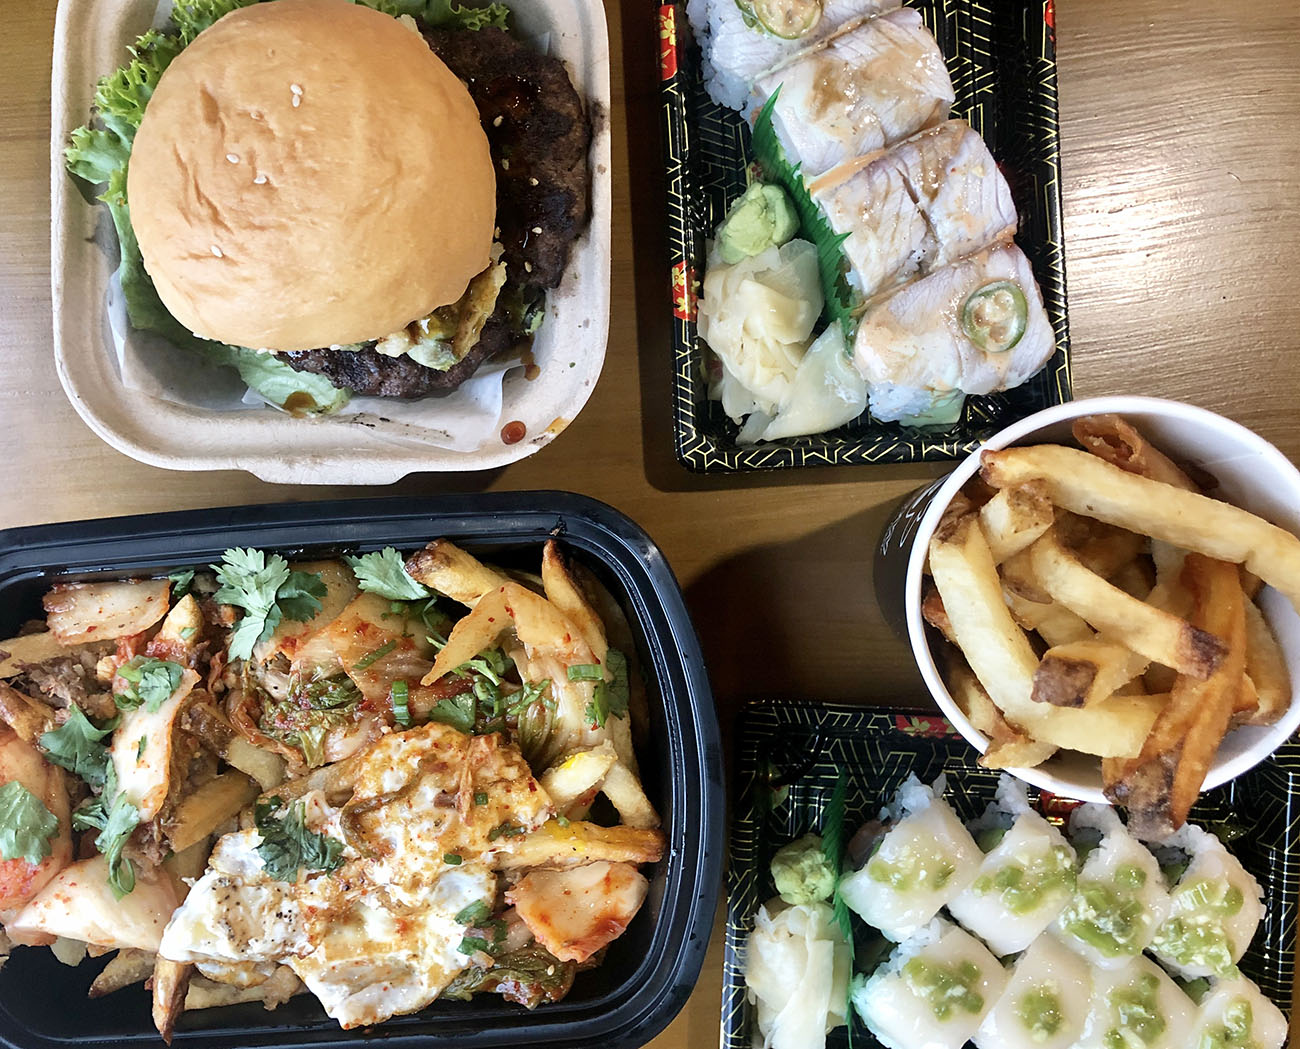 Blacow Burger now open in South End — expect Cowfish-style menu with cheaper prices